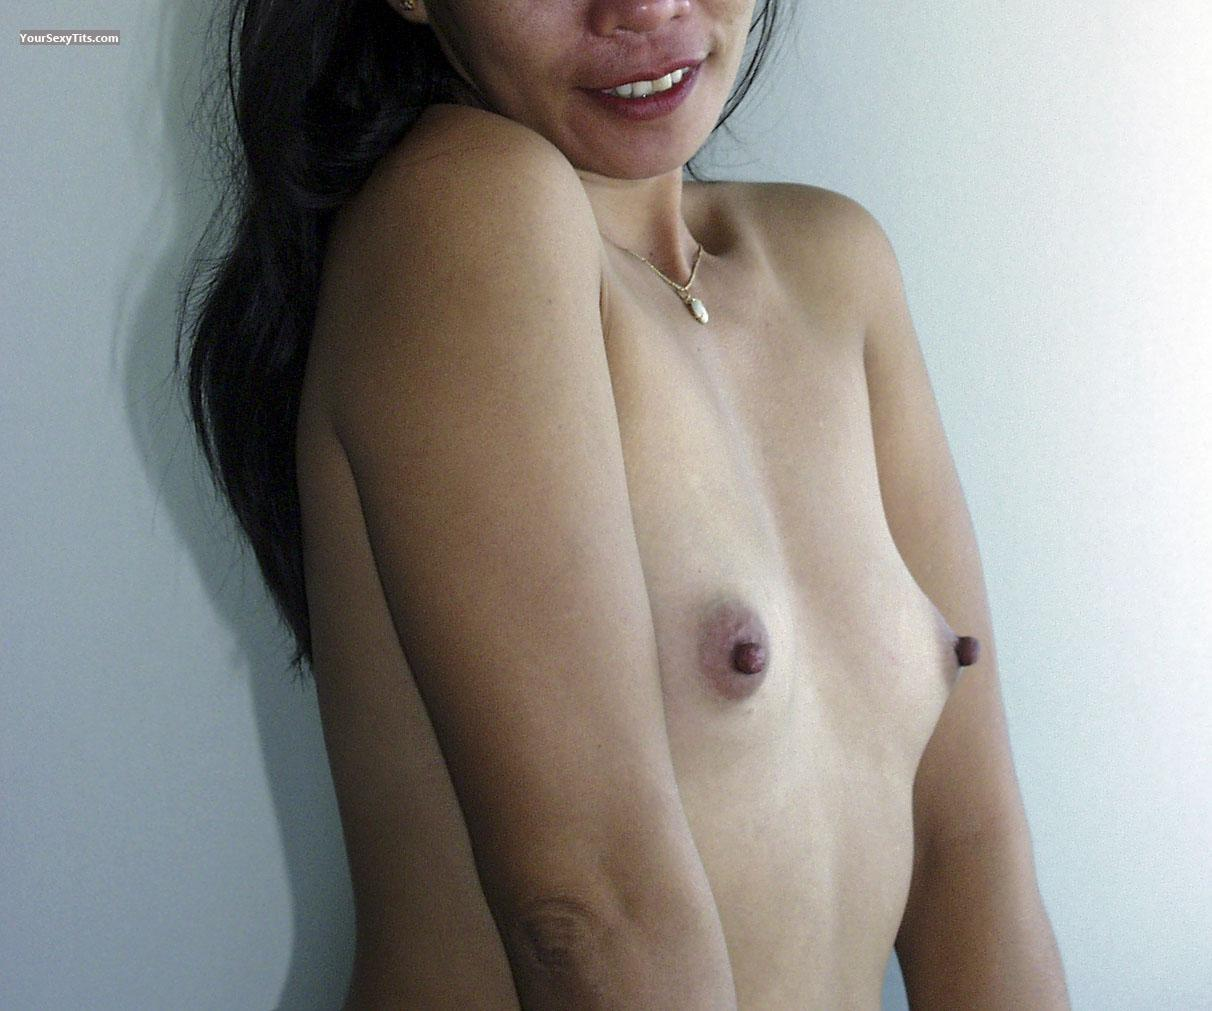 Tit Flash: Girlfriend's Small Tits - Jenny from Philippines